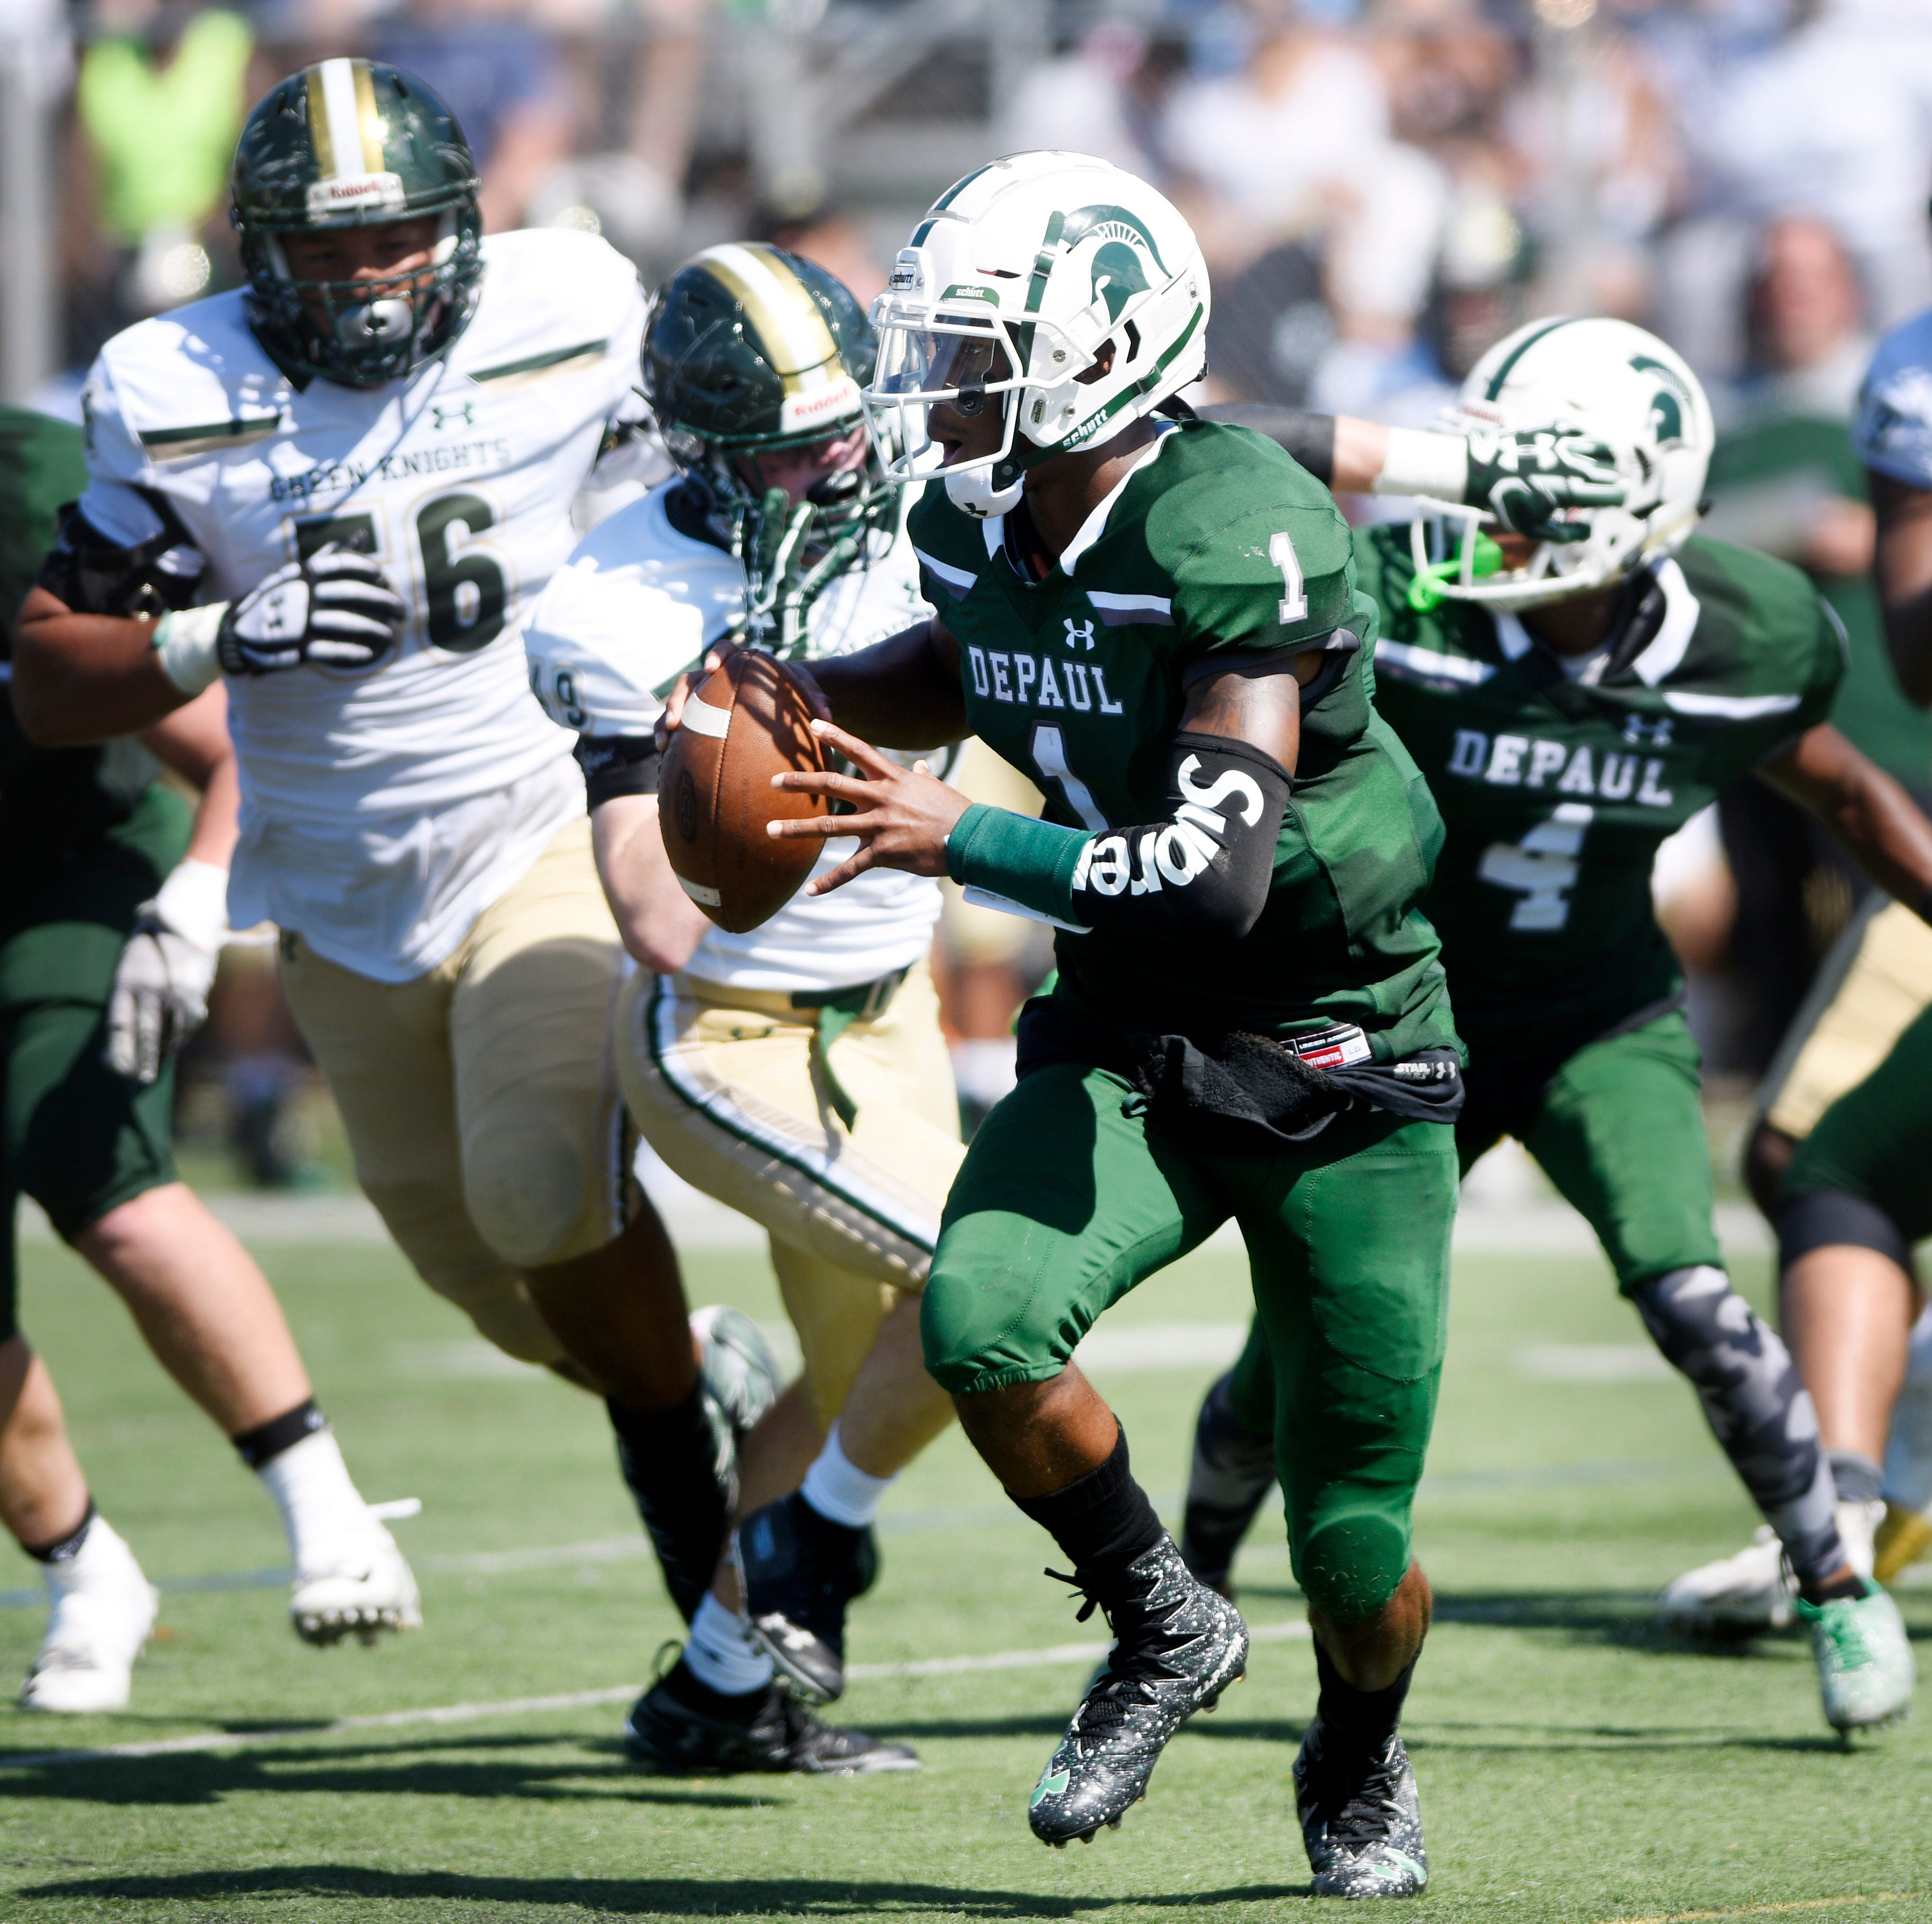 NJ football: Top moments from across New Jersey in Week 3